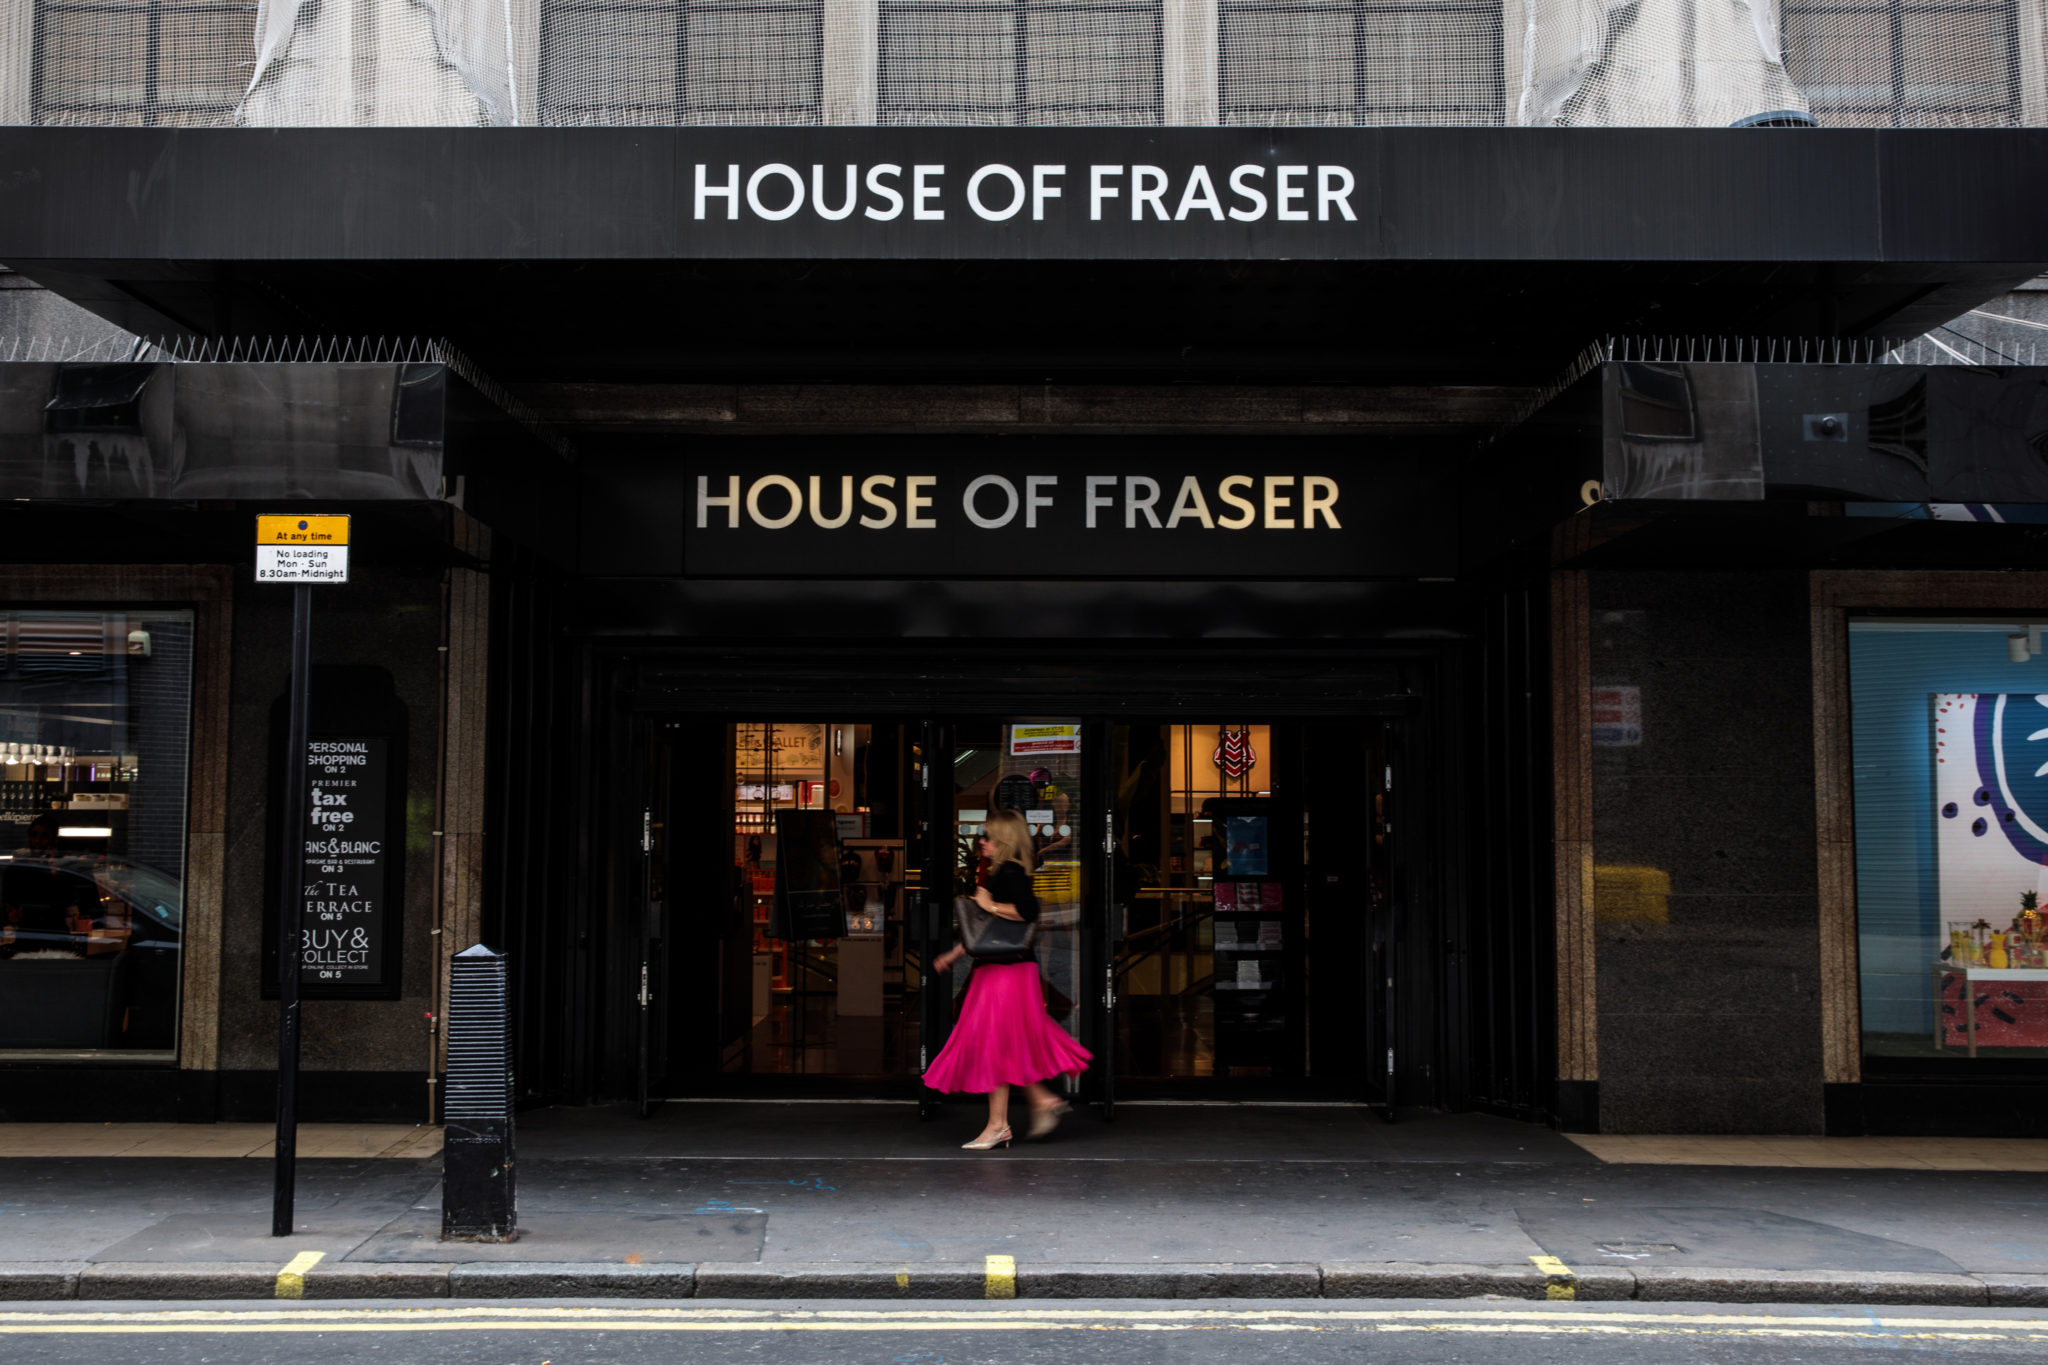 House of Fraser closures cut points of sale for Fossil Group and others across the UK